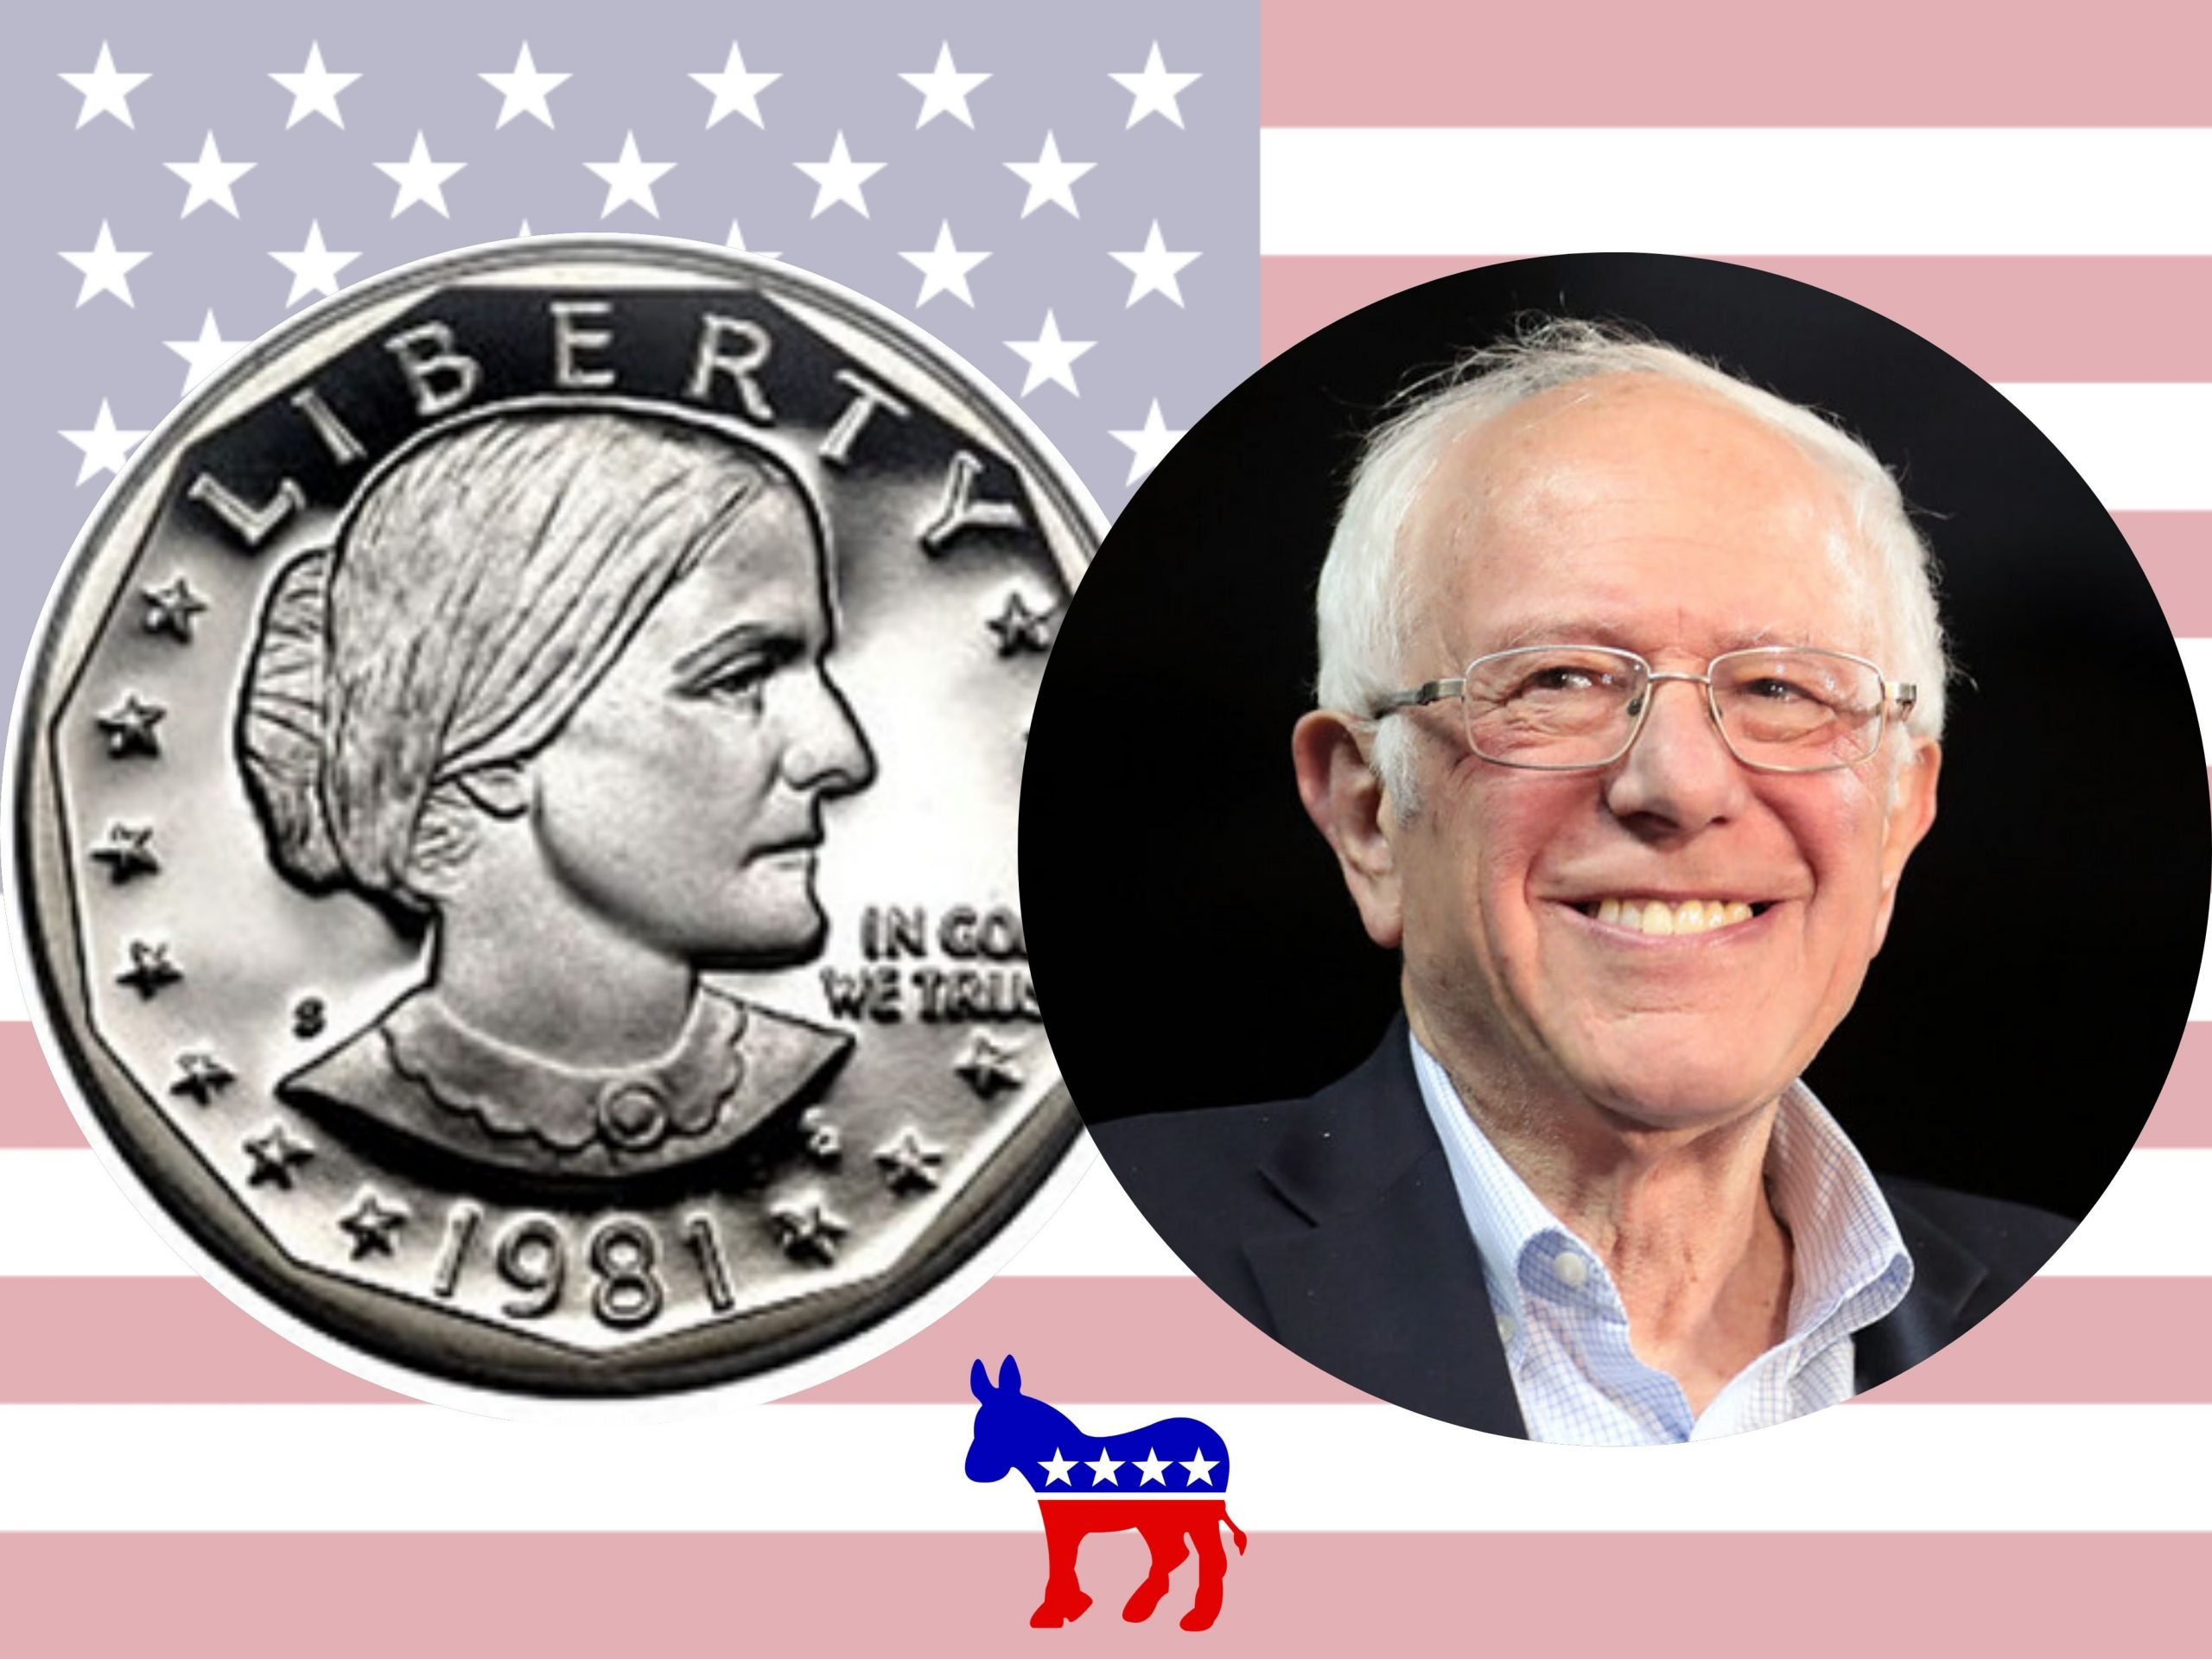 Sanders, the left-wing candidate